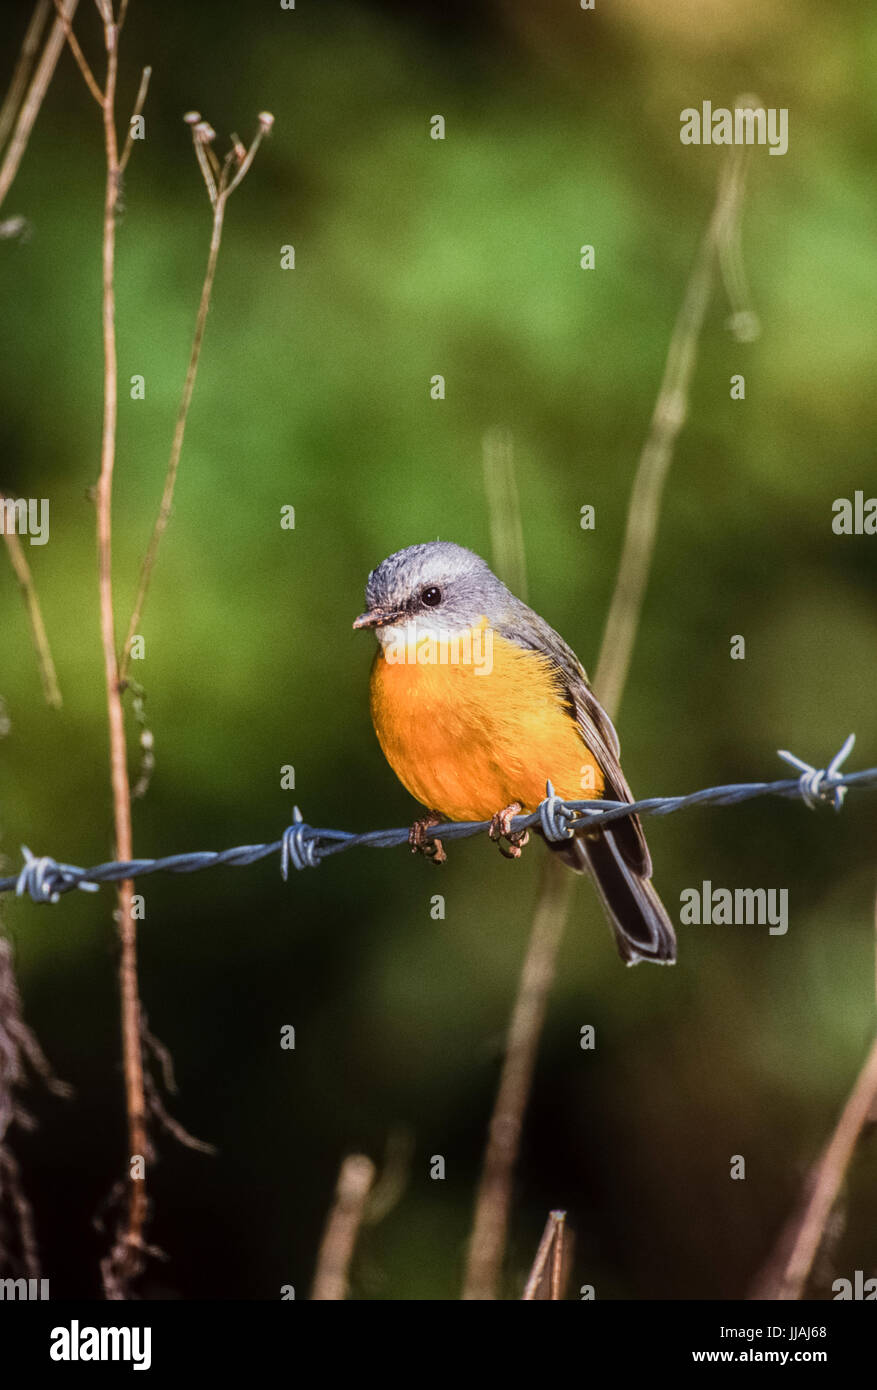 Eastern Yellow Robin, (Eopsaltria australis),perched on barbed wire, Lamington National Park, Queensland, Australia Stock Photo